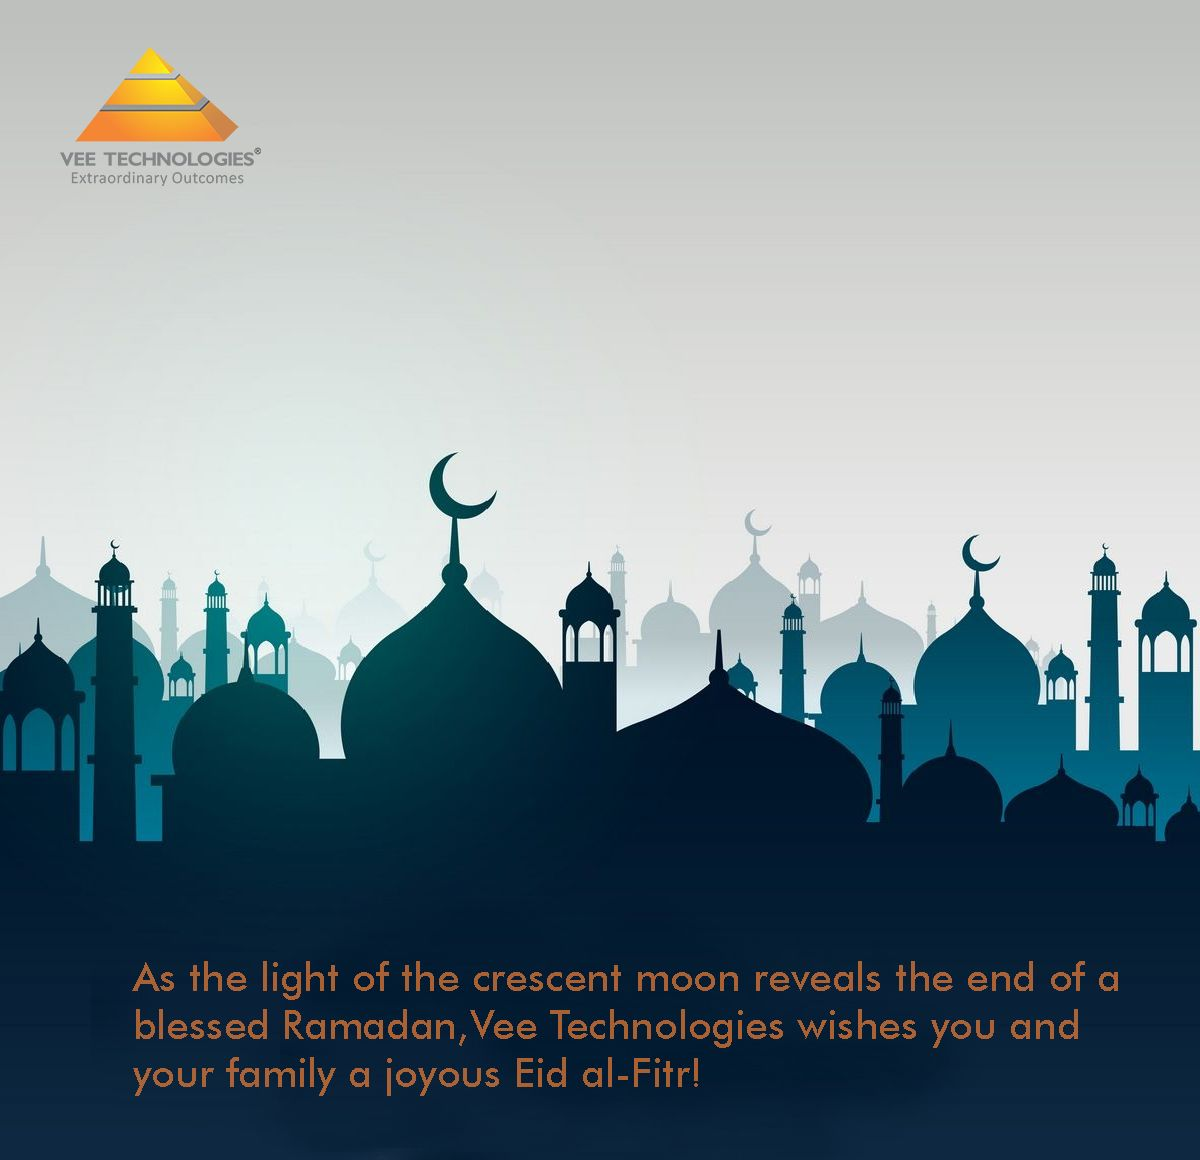 Happy Ramadan 2017 Vee Technologies As The Light Of The Crescent